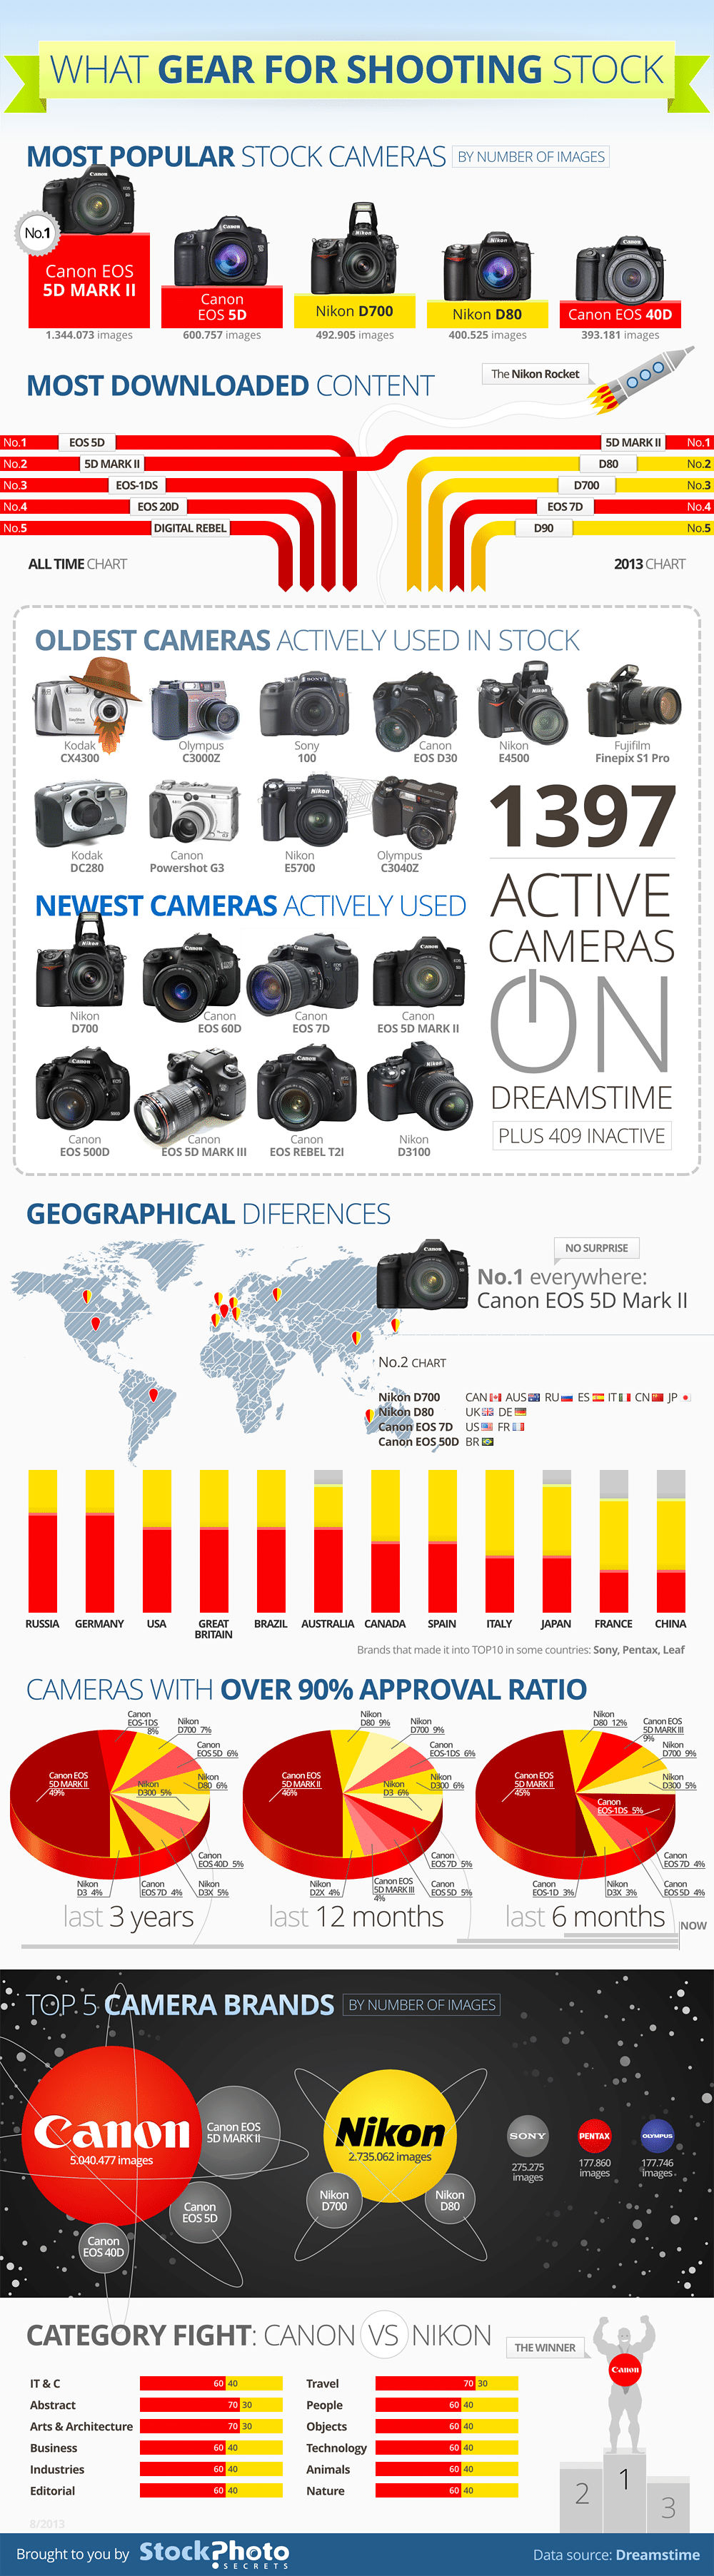 What Gear for Shooting Stock Photos (Infographic)